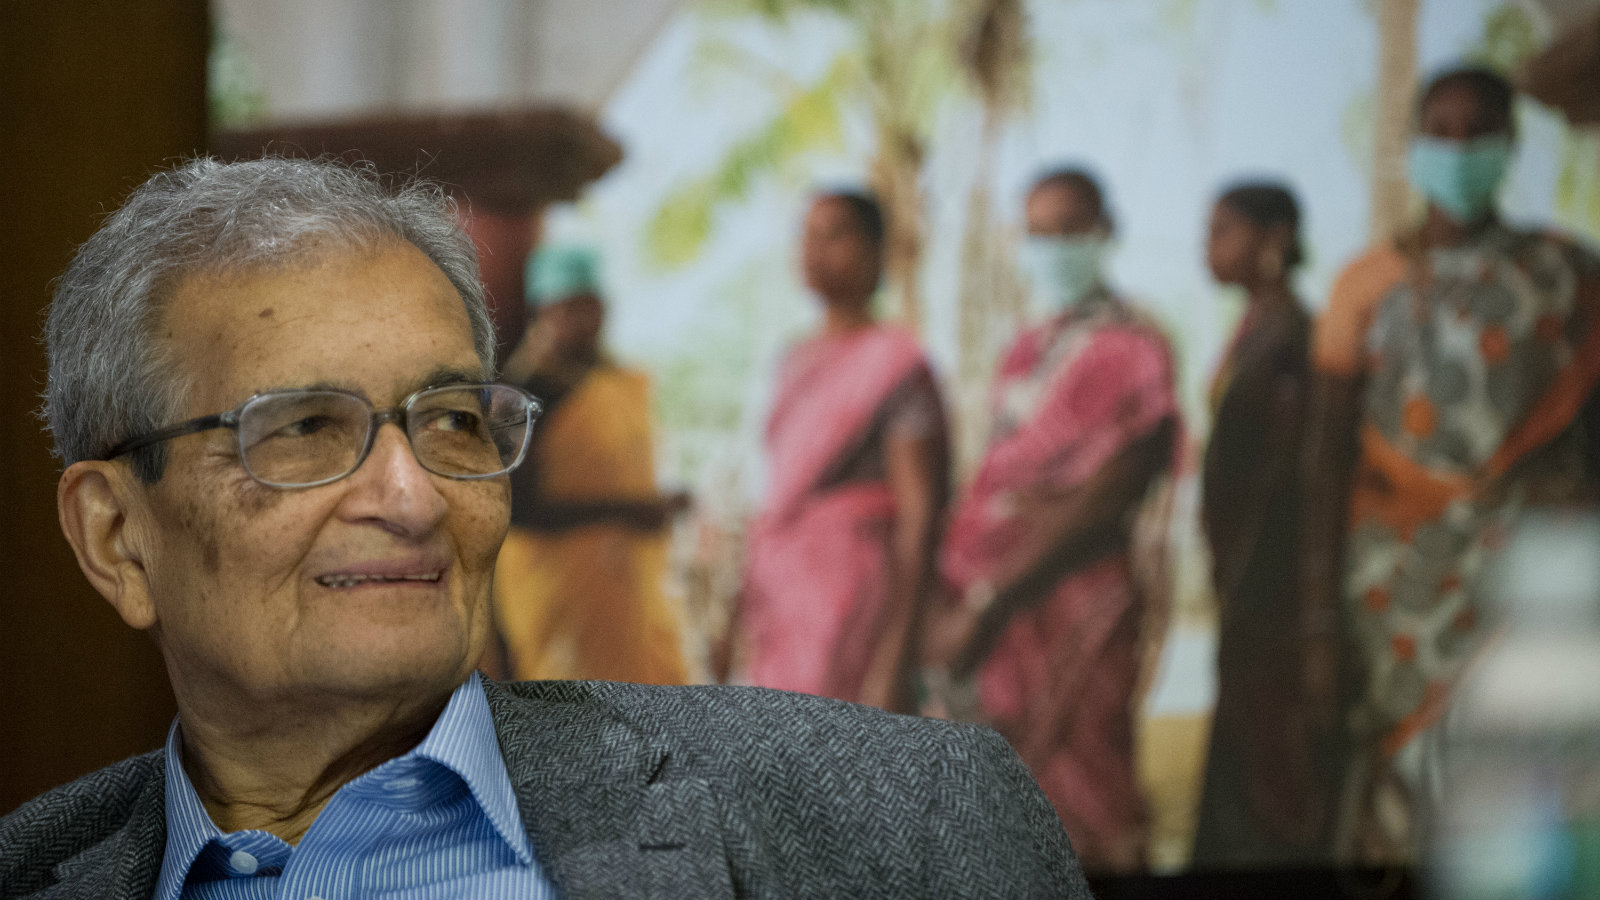 Nobel laureate Dr. Amartya Sen, Professor of Economics and Philosophy at Harvard University, listens to a colleague's remarks during the launch of the FXBVillage Toolkit and Planning Guide on Monday, May 4, 2015, in Cambridge, Mass. The three-year FXBVillage model has helped lift more than 80,000 people from extreme poverty to self-sufficiency and is now available to the public as an open-source toolkit at www.FXB.org/toolkit.